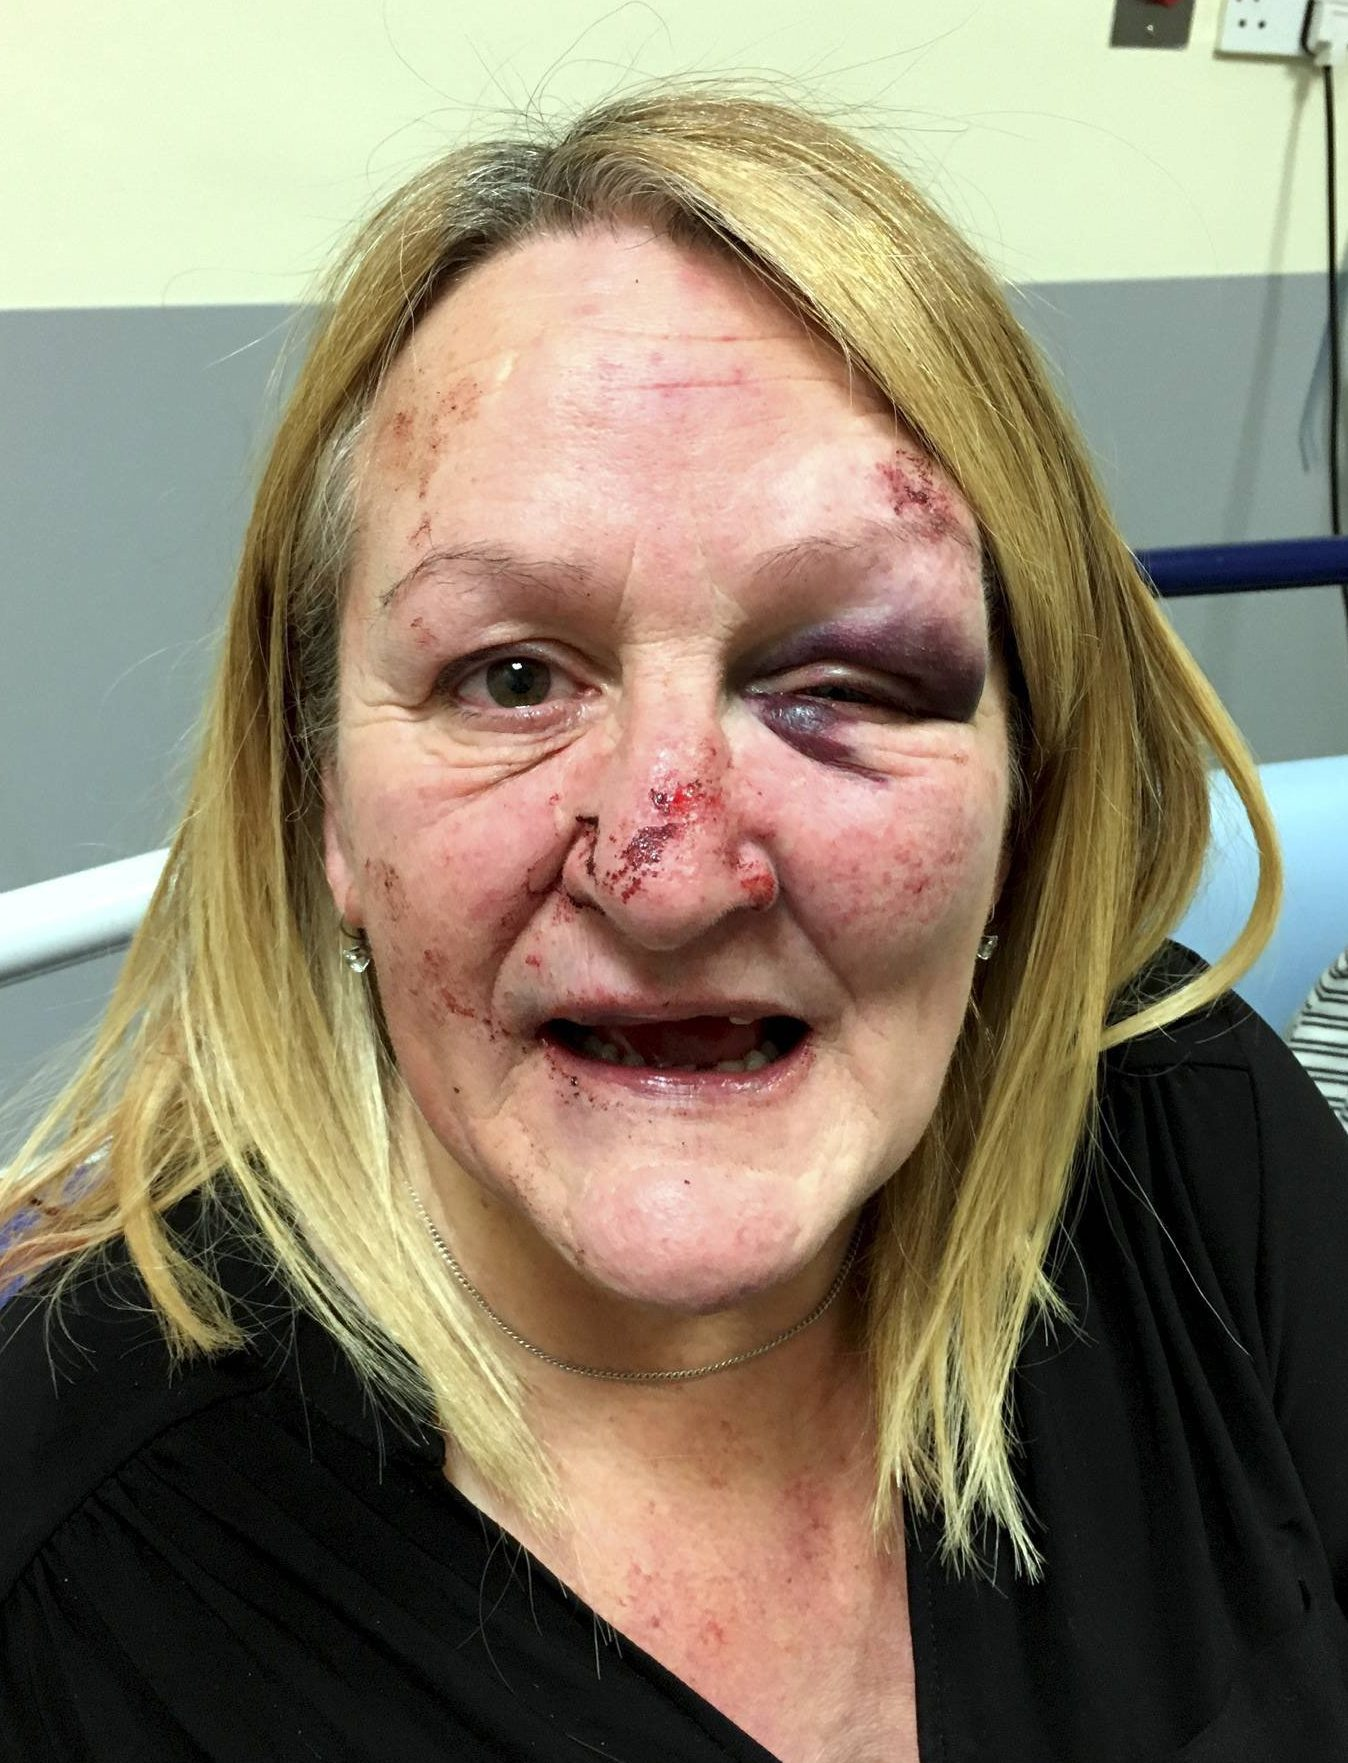 Dated: 26/03/2018 WOMEN REVEAL SHOCKING INJURIES FROM UNPROVOKED STREET ATTACK - IN BID TO CATCH ASSAILANT .. Diane Brown, 53, who was beaten and left unconscious with broken front teeth following an unprovoked attack on her and her friend, in Newton Aycliffe, County Durham last Friday evening (MAR 23). Diane and her friend have spoken out about the assault, in a bid to help police catch the assailant. SEE COPY FROM NORTH NEWS